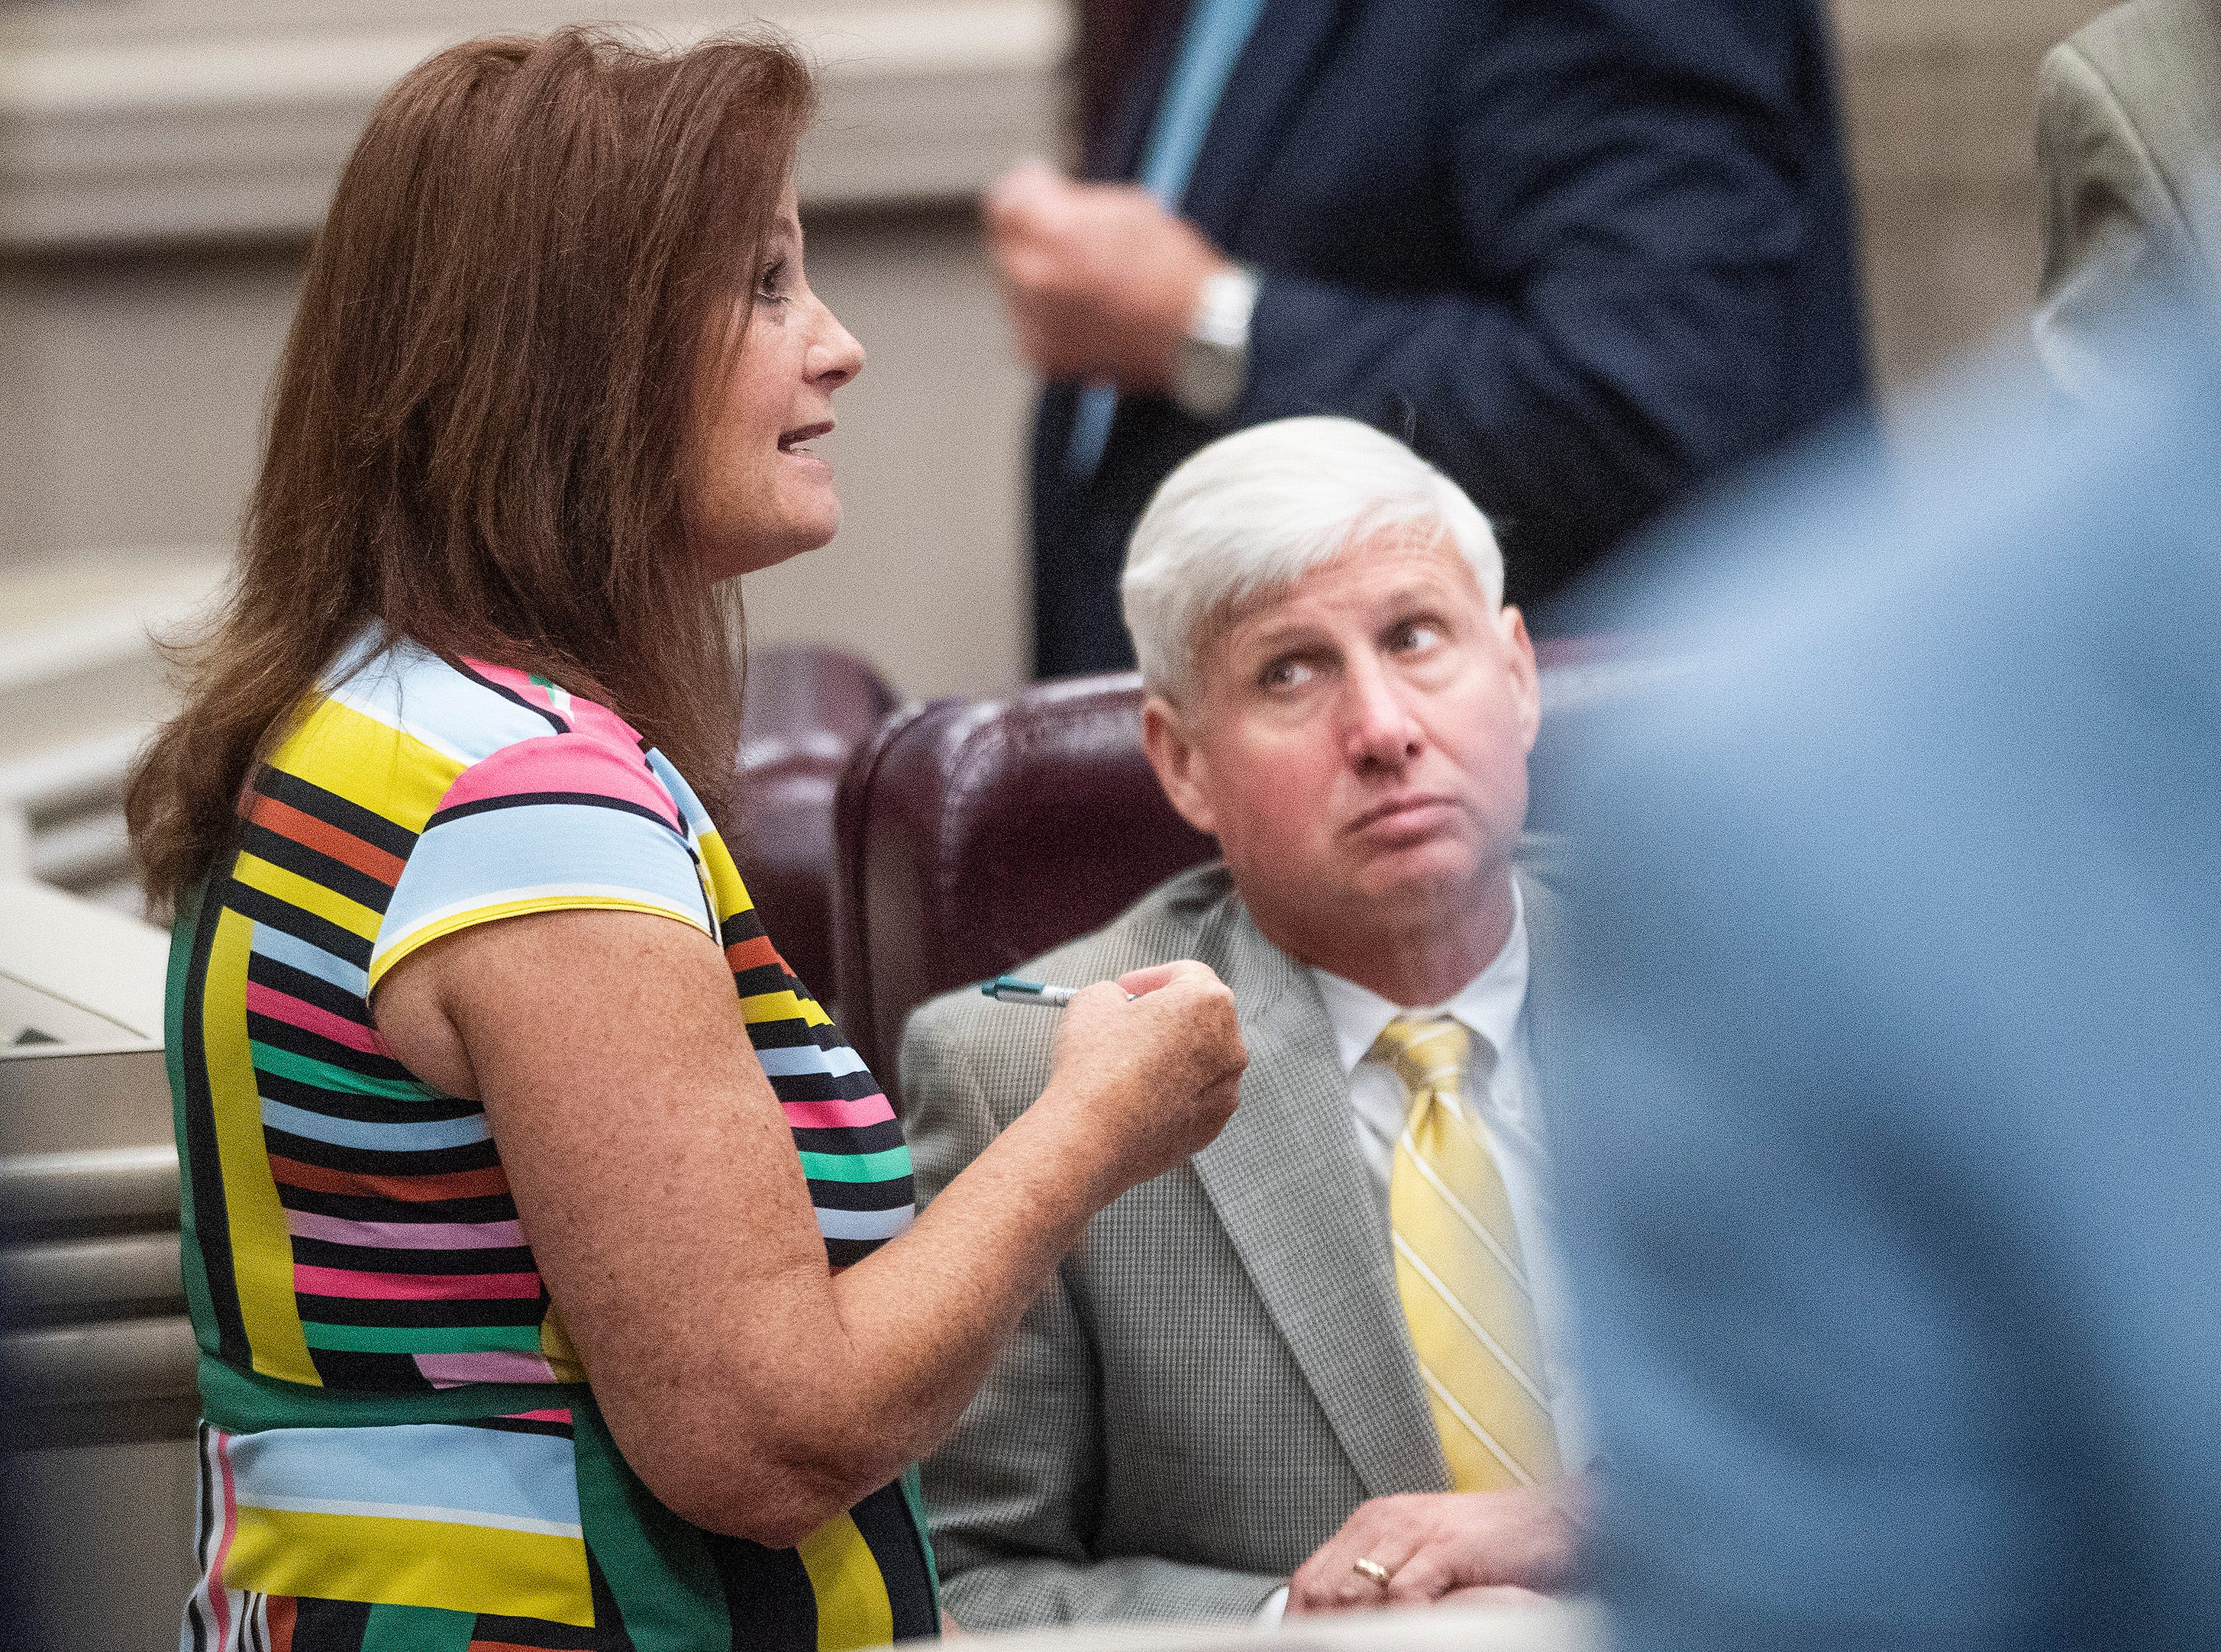 Rep. Terri Collins, right, chats with Rep. Alan Baker on the house floor at the Alabama Statehouse in Montgomery, Ala., on Tuesday May 14, 2019. Rep. Collins is the sponsor of HB314, the near-total ban on abortion bill.